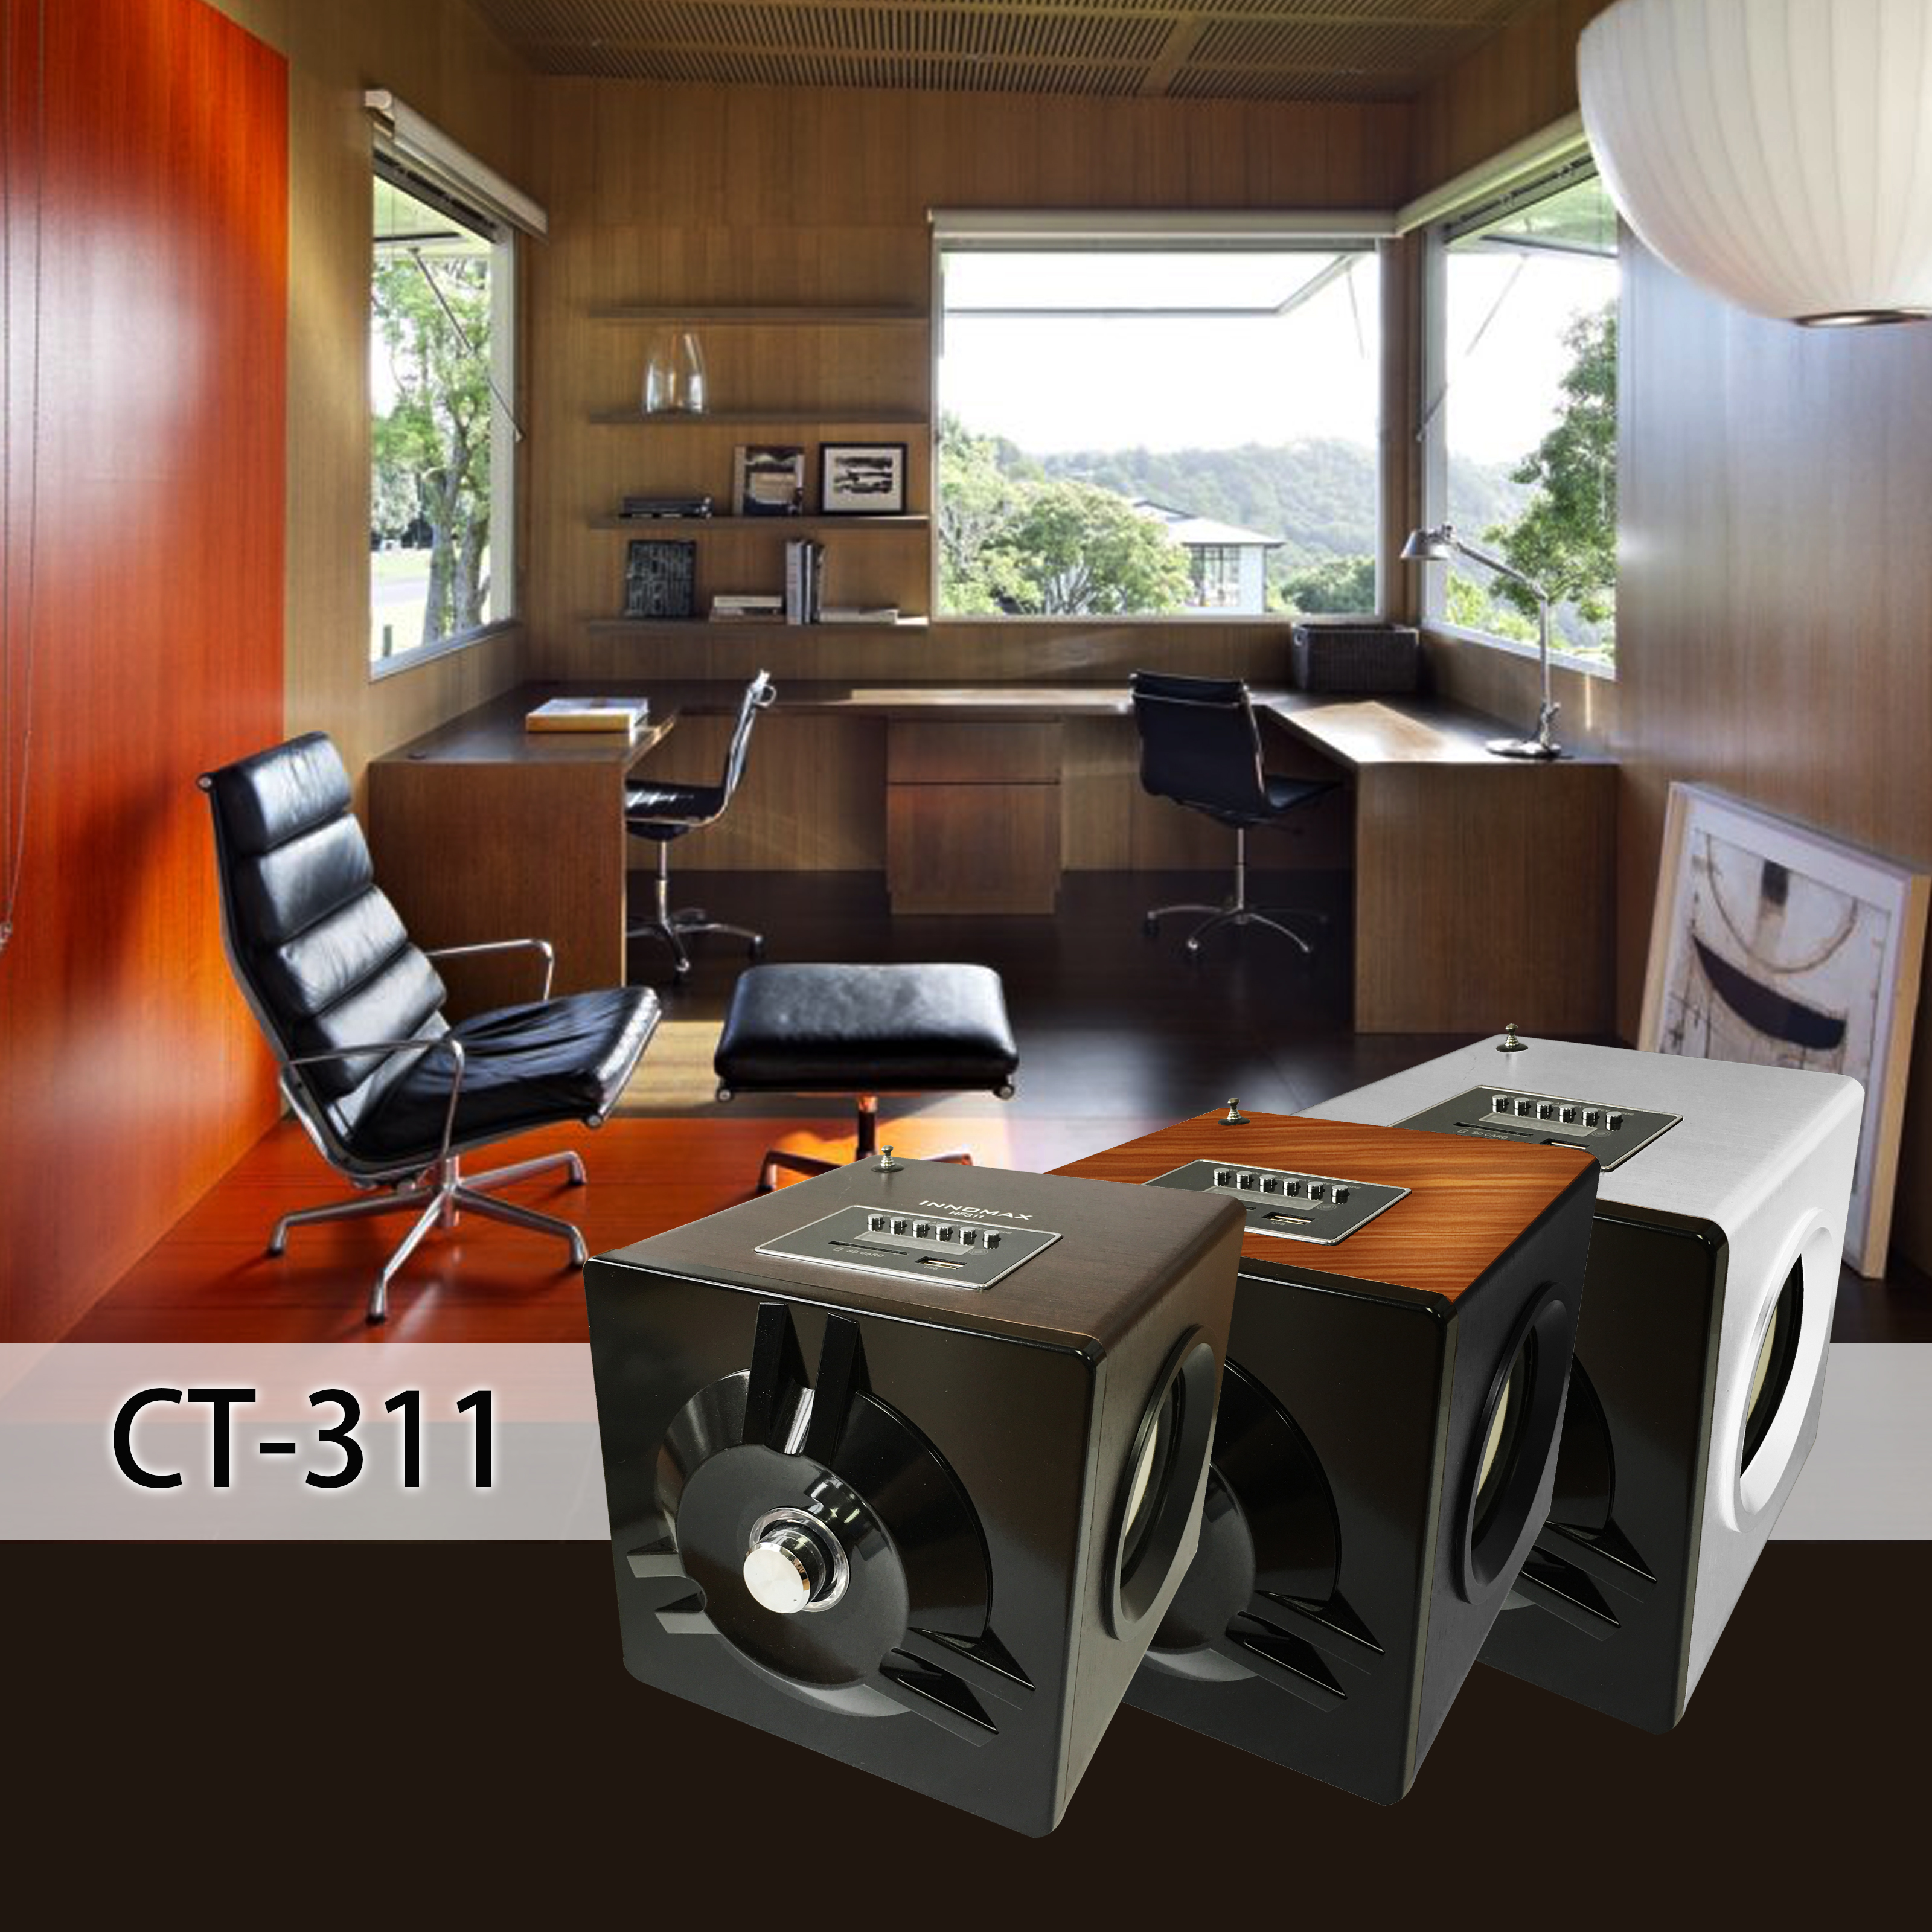 CT-311 home office .jpg